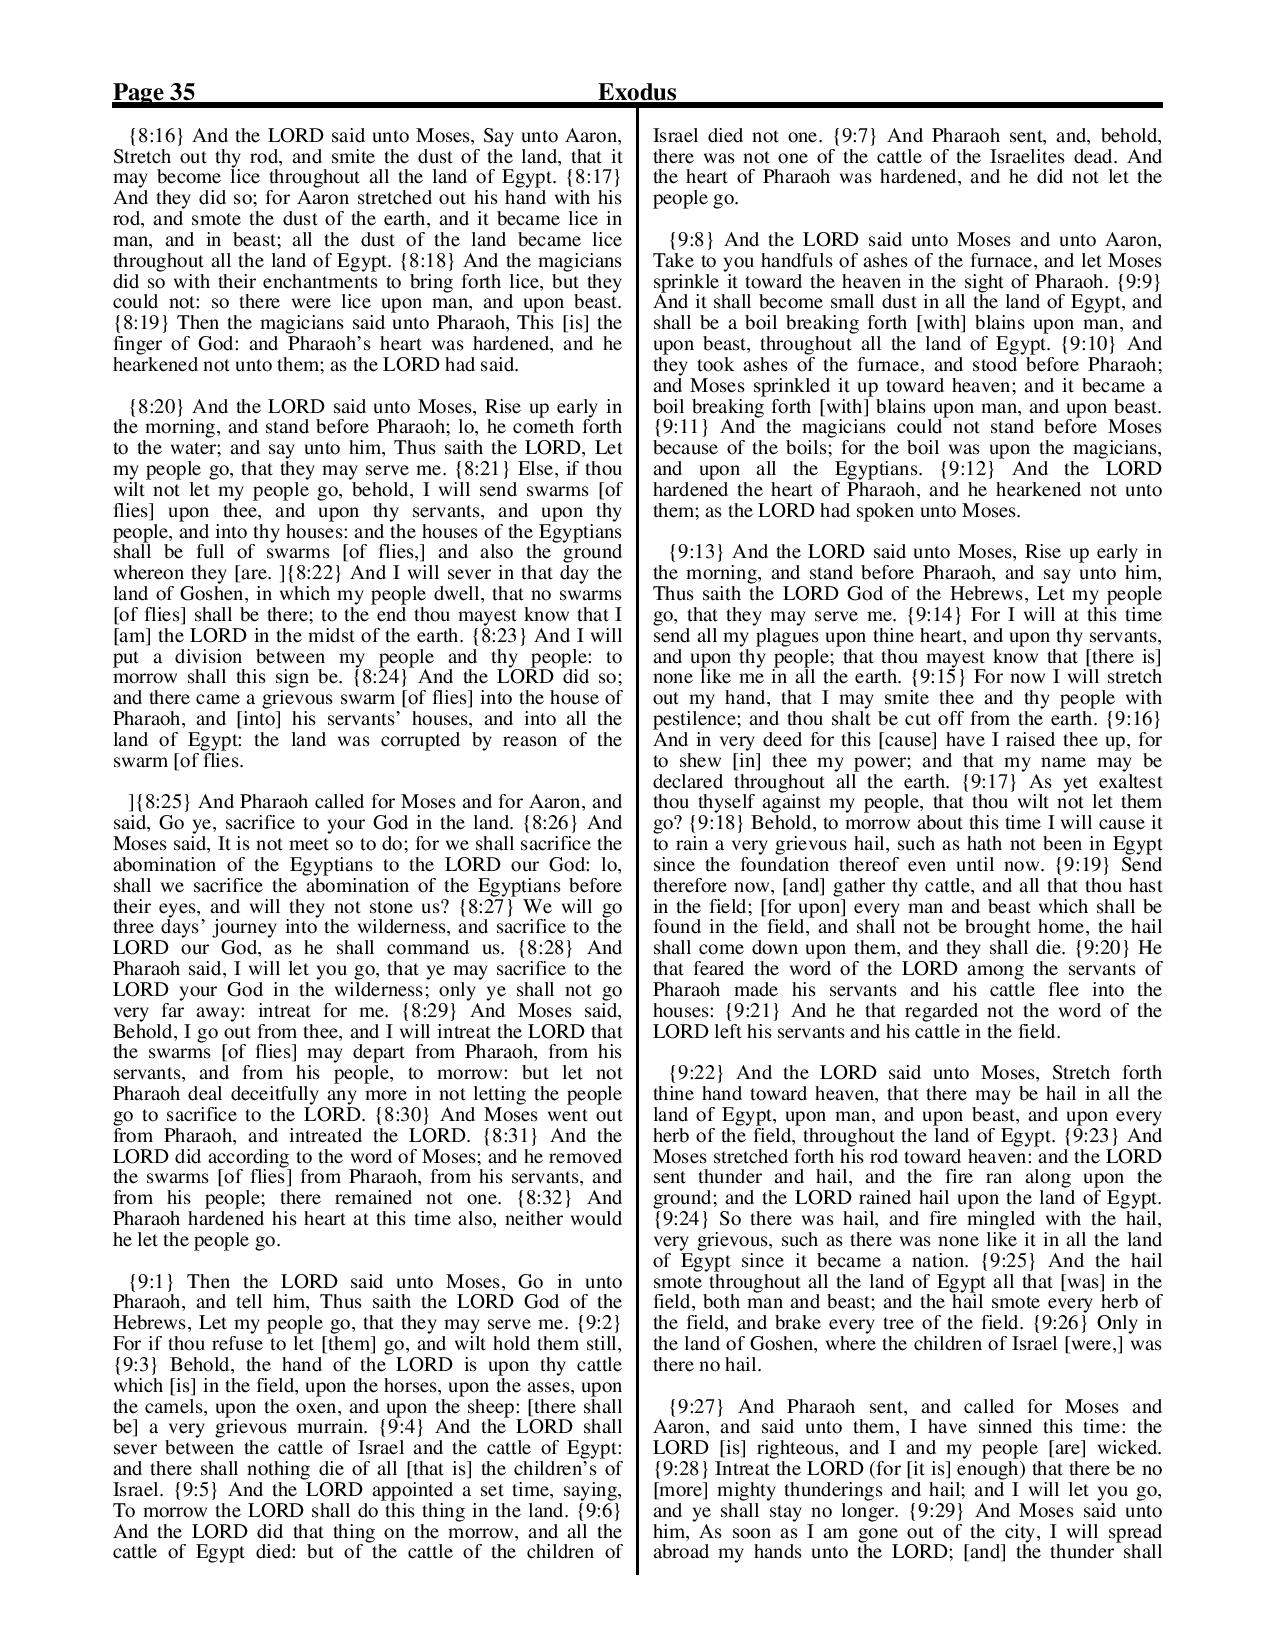 King-James-Bible-KJV-Bible-PDF-page-056